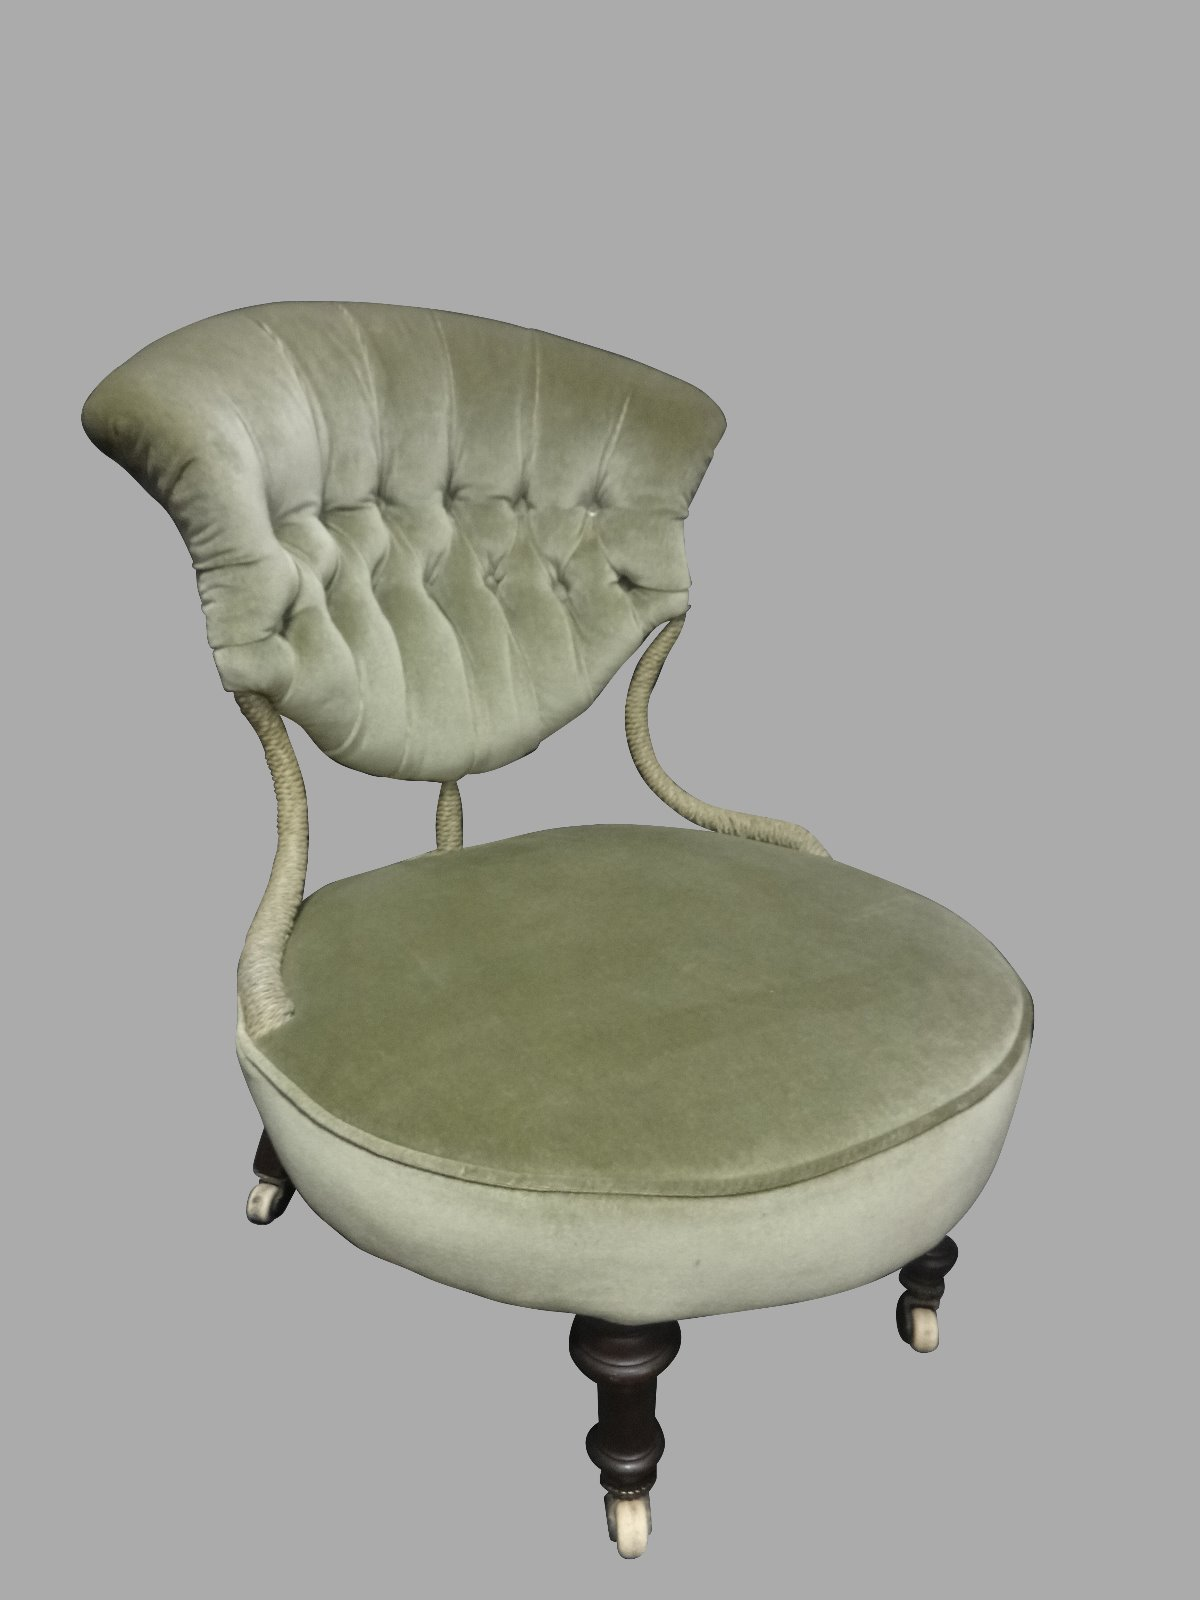 Good Deep Buttoned Chair c.1880 (1 of 1)